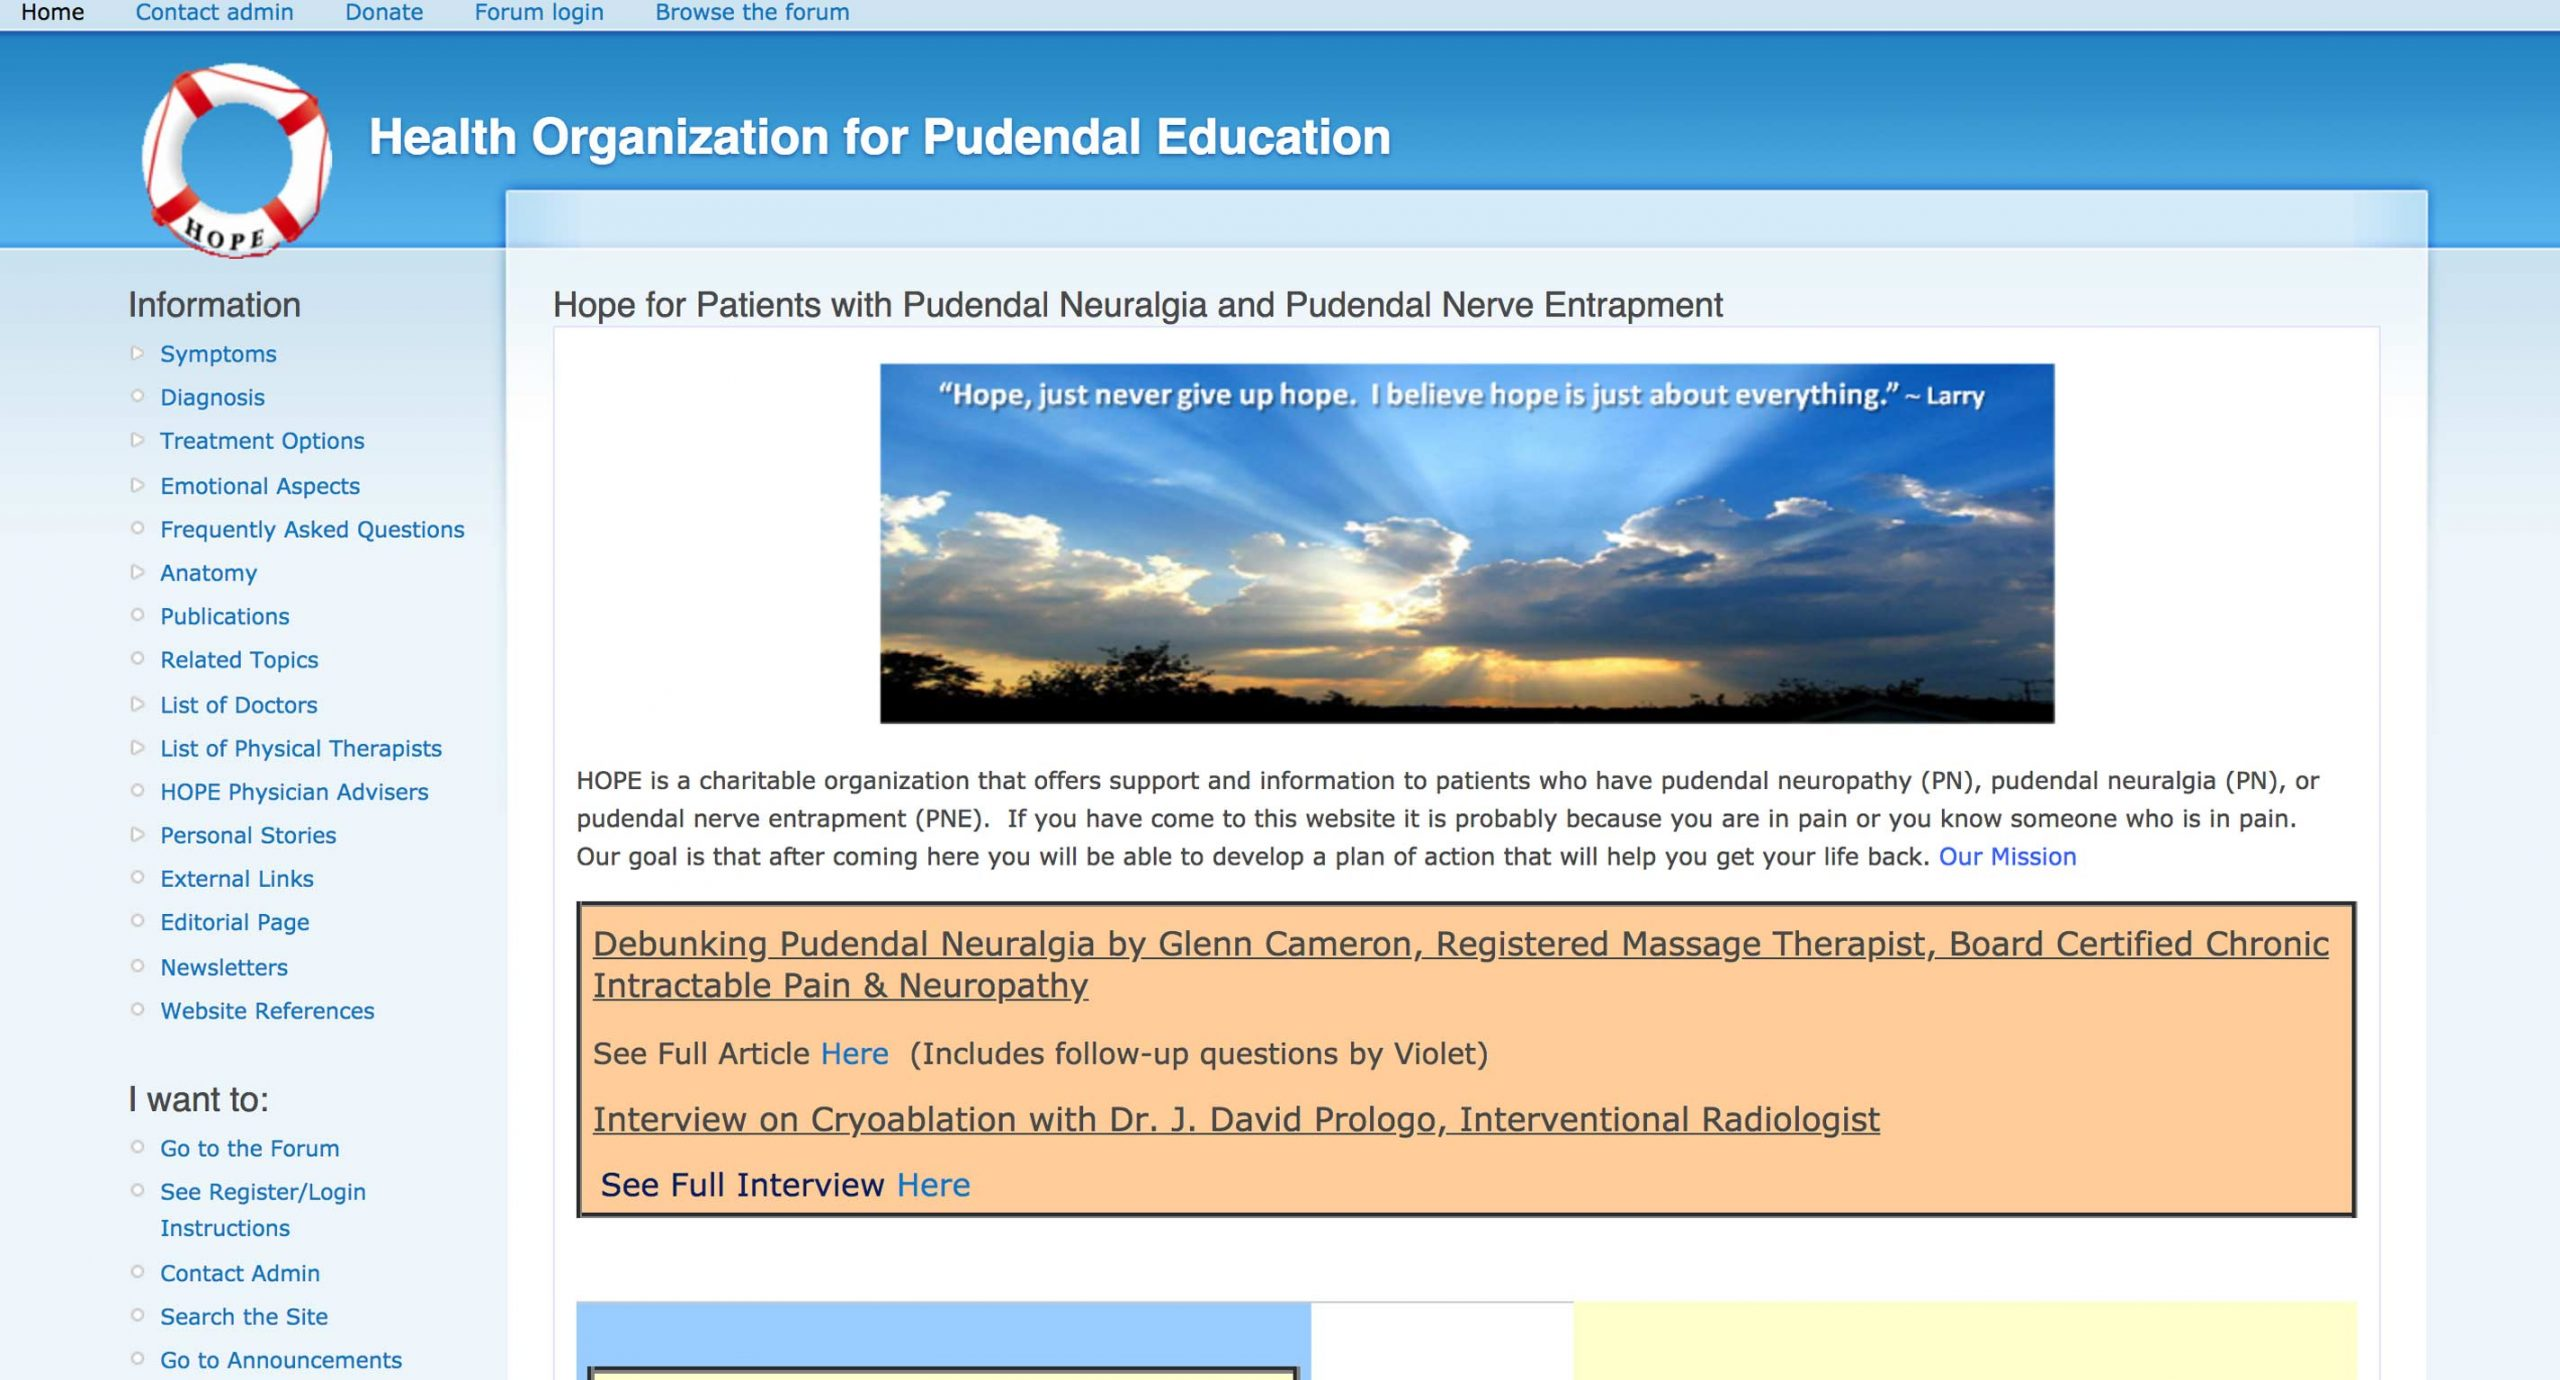 HOPE - Health Organization for Pudendal Education - Home Page